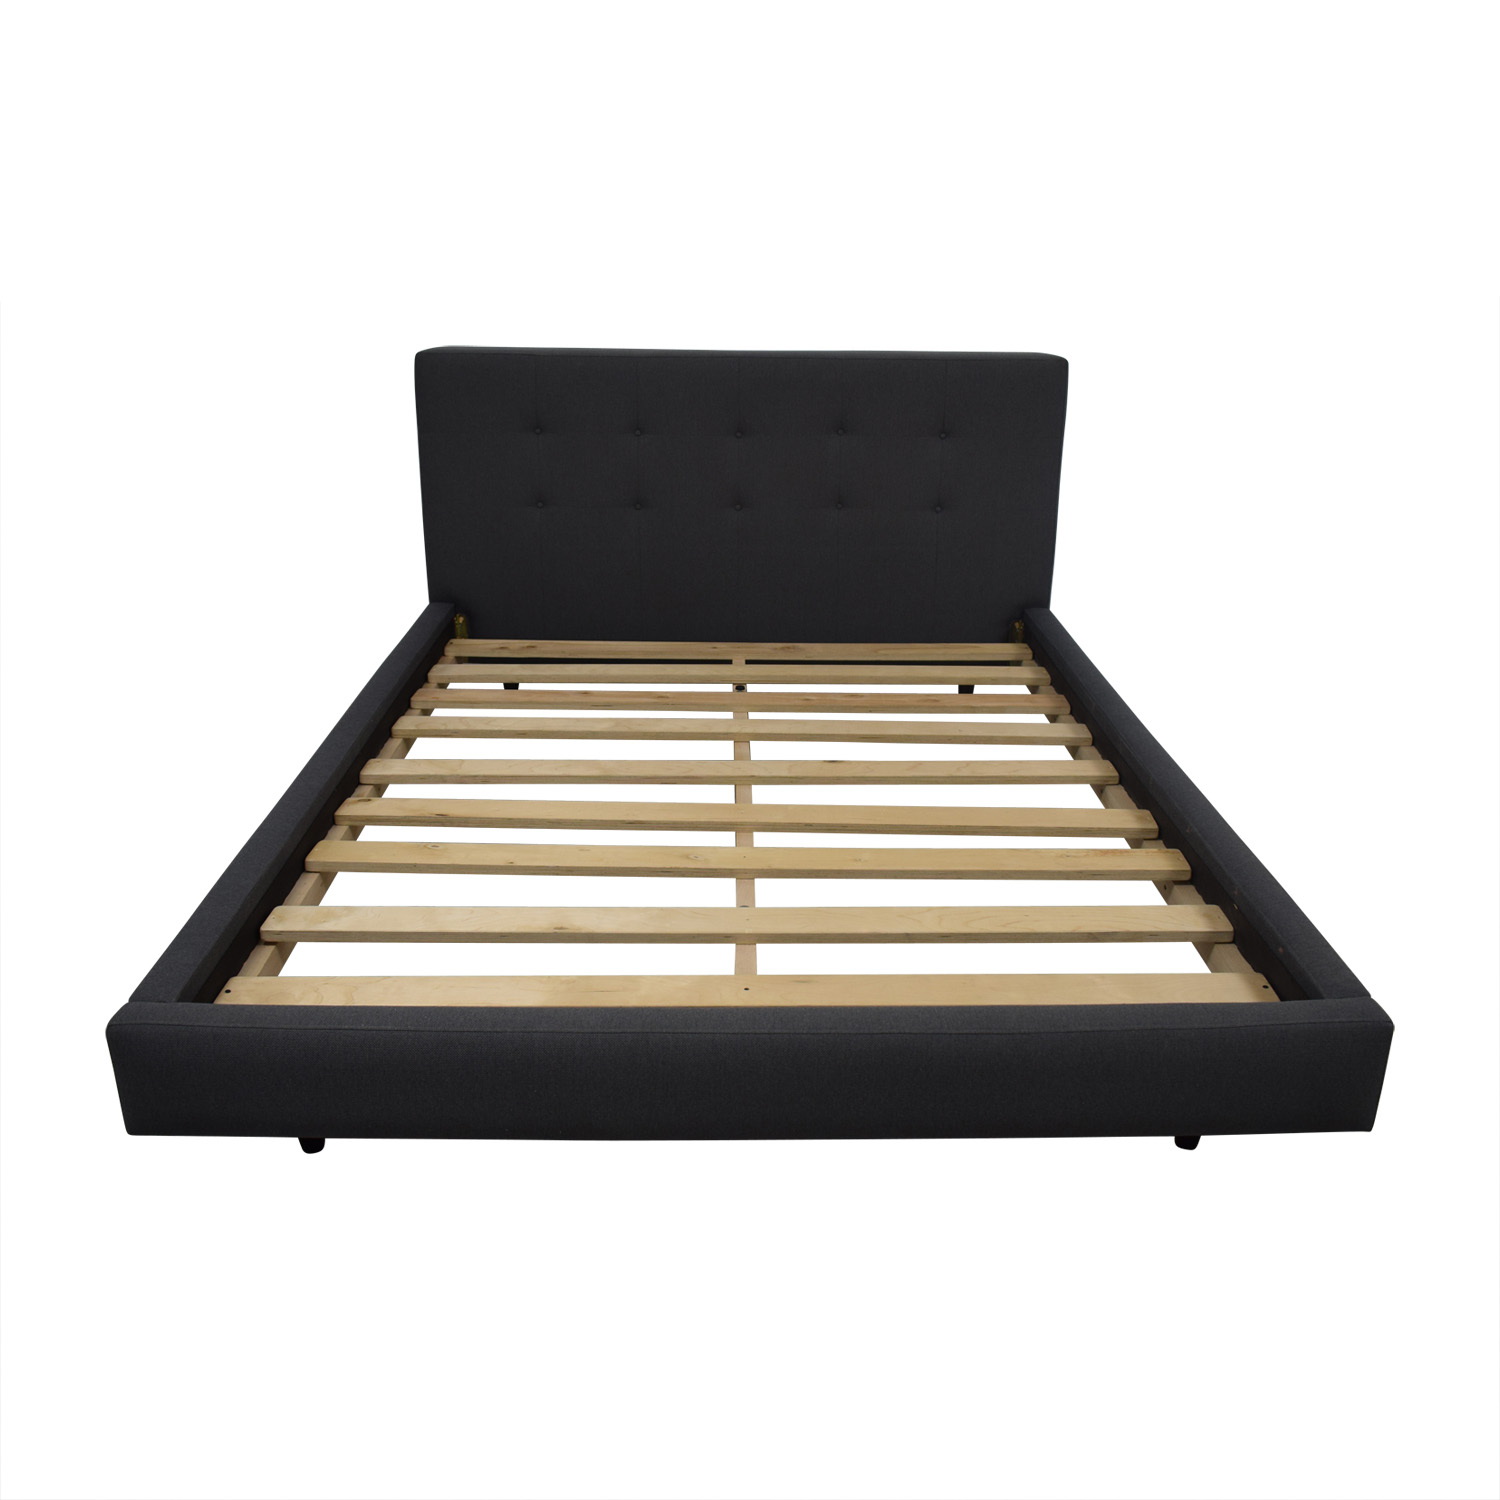 buy Crate & Barrel Crate & Barrel Tate Grey Upholstered Platform Queen Bed Frame online